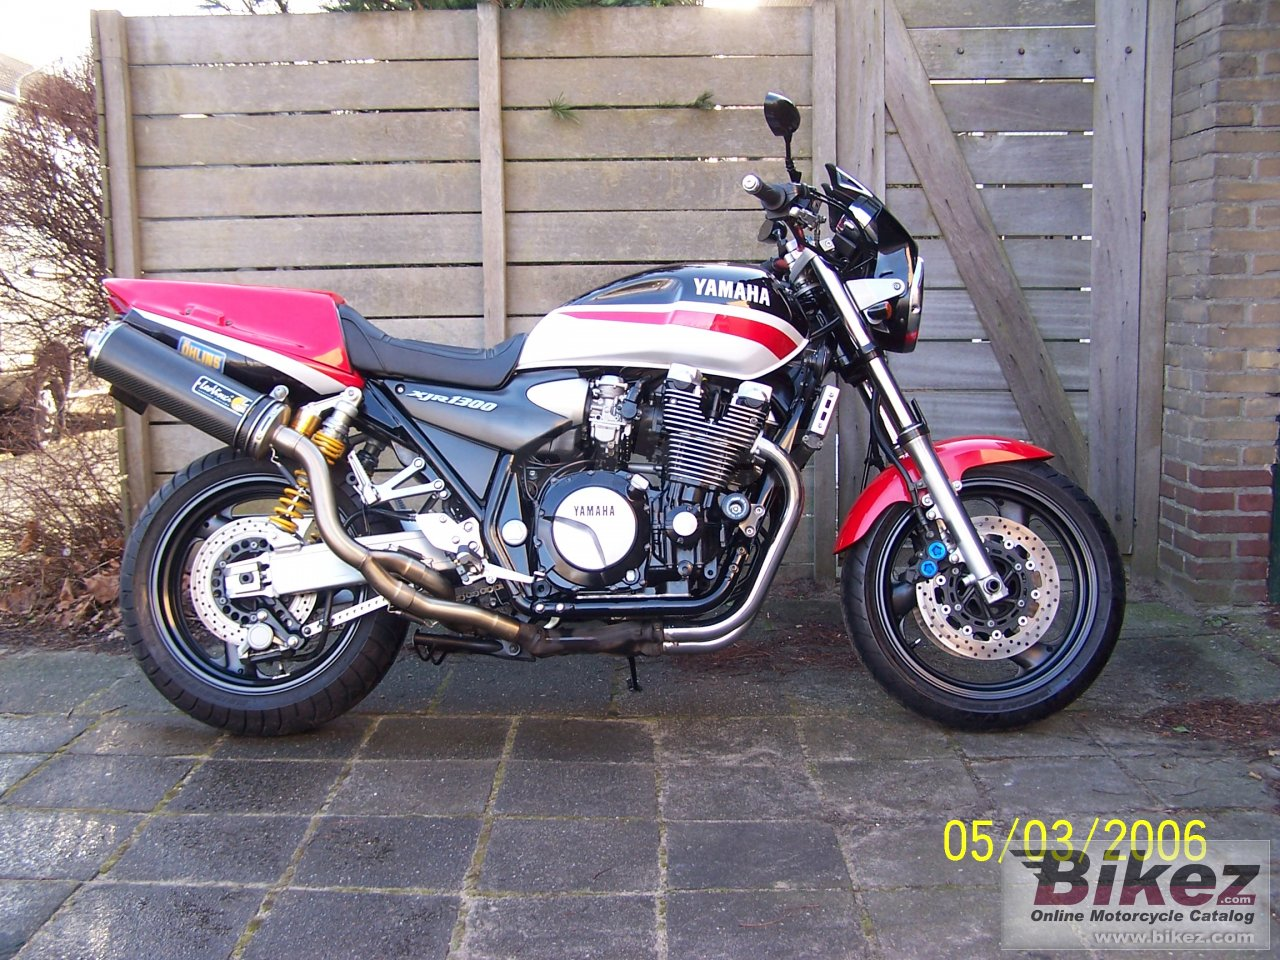 Big  xjr 1300 picture and wallpaper from Bikez.com